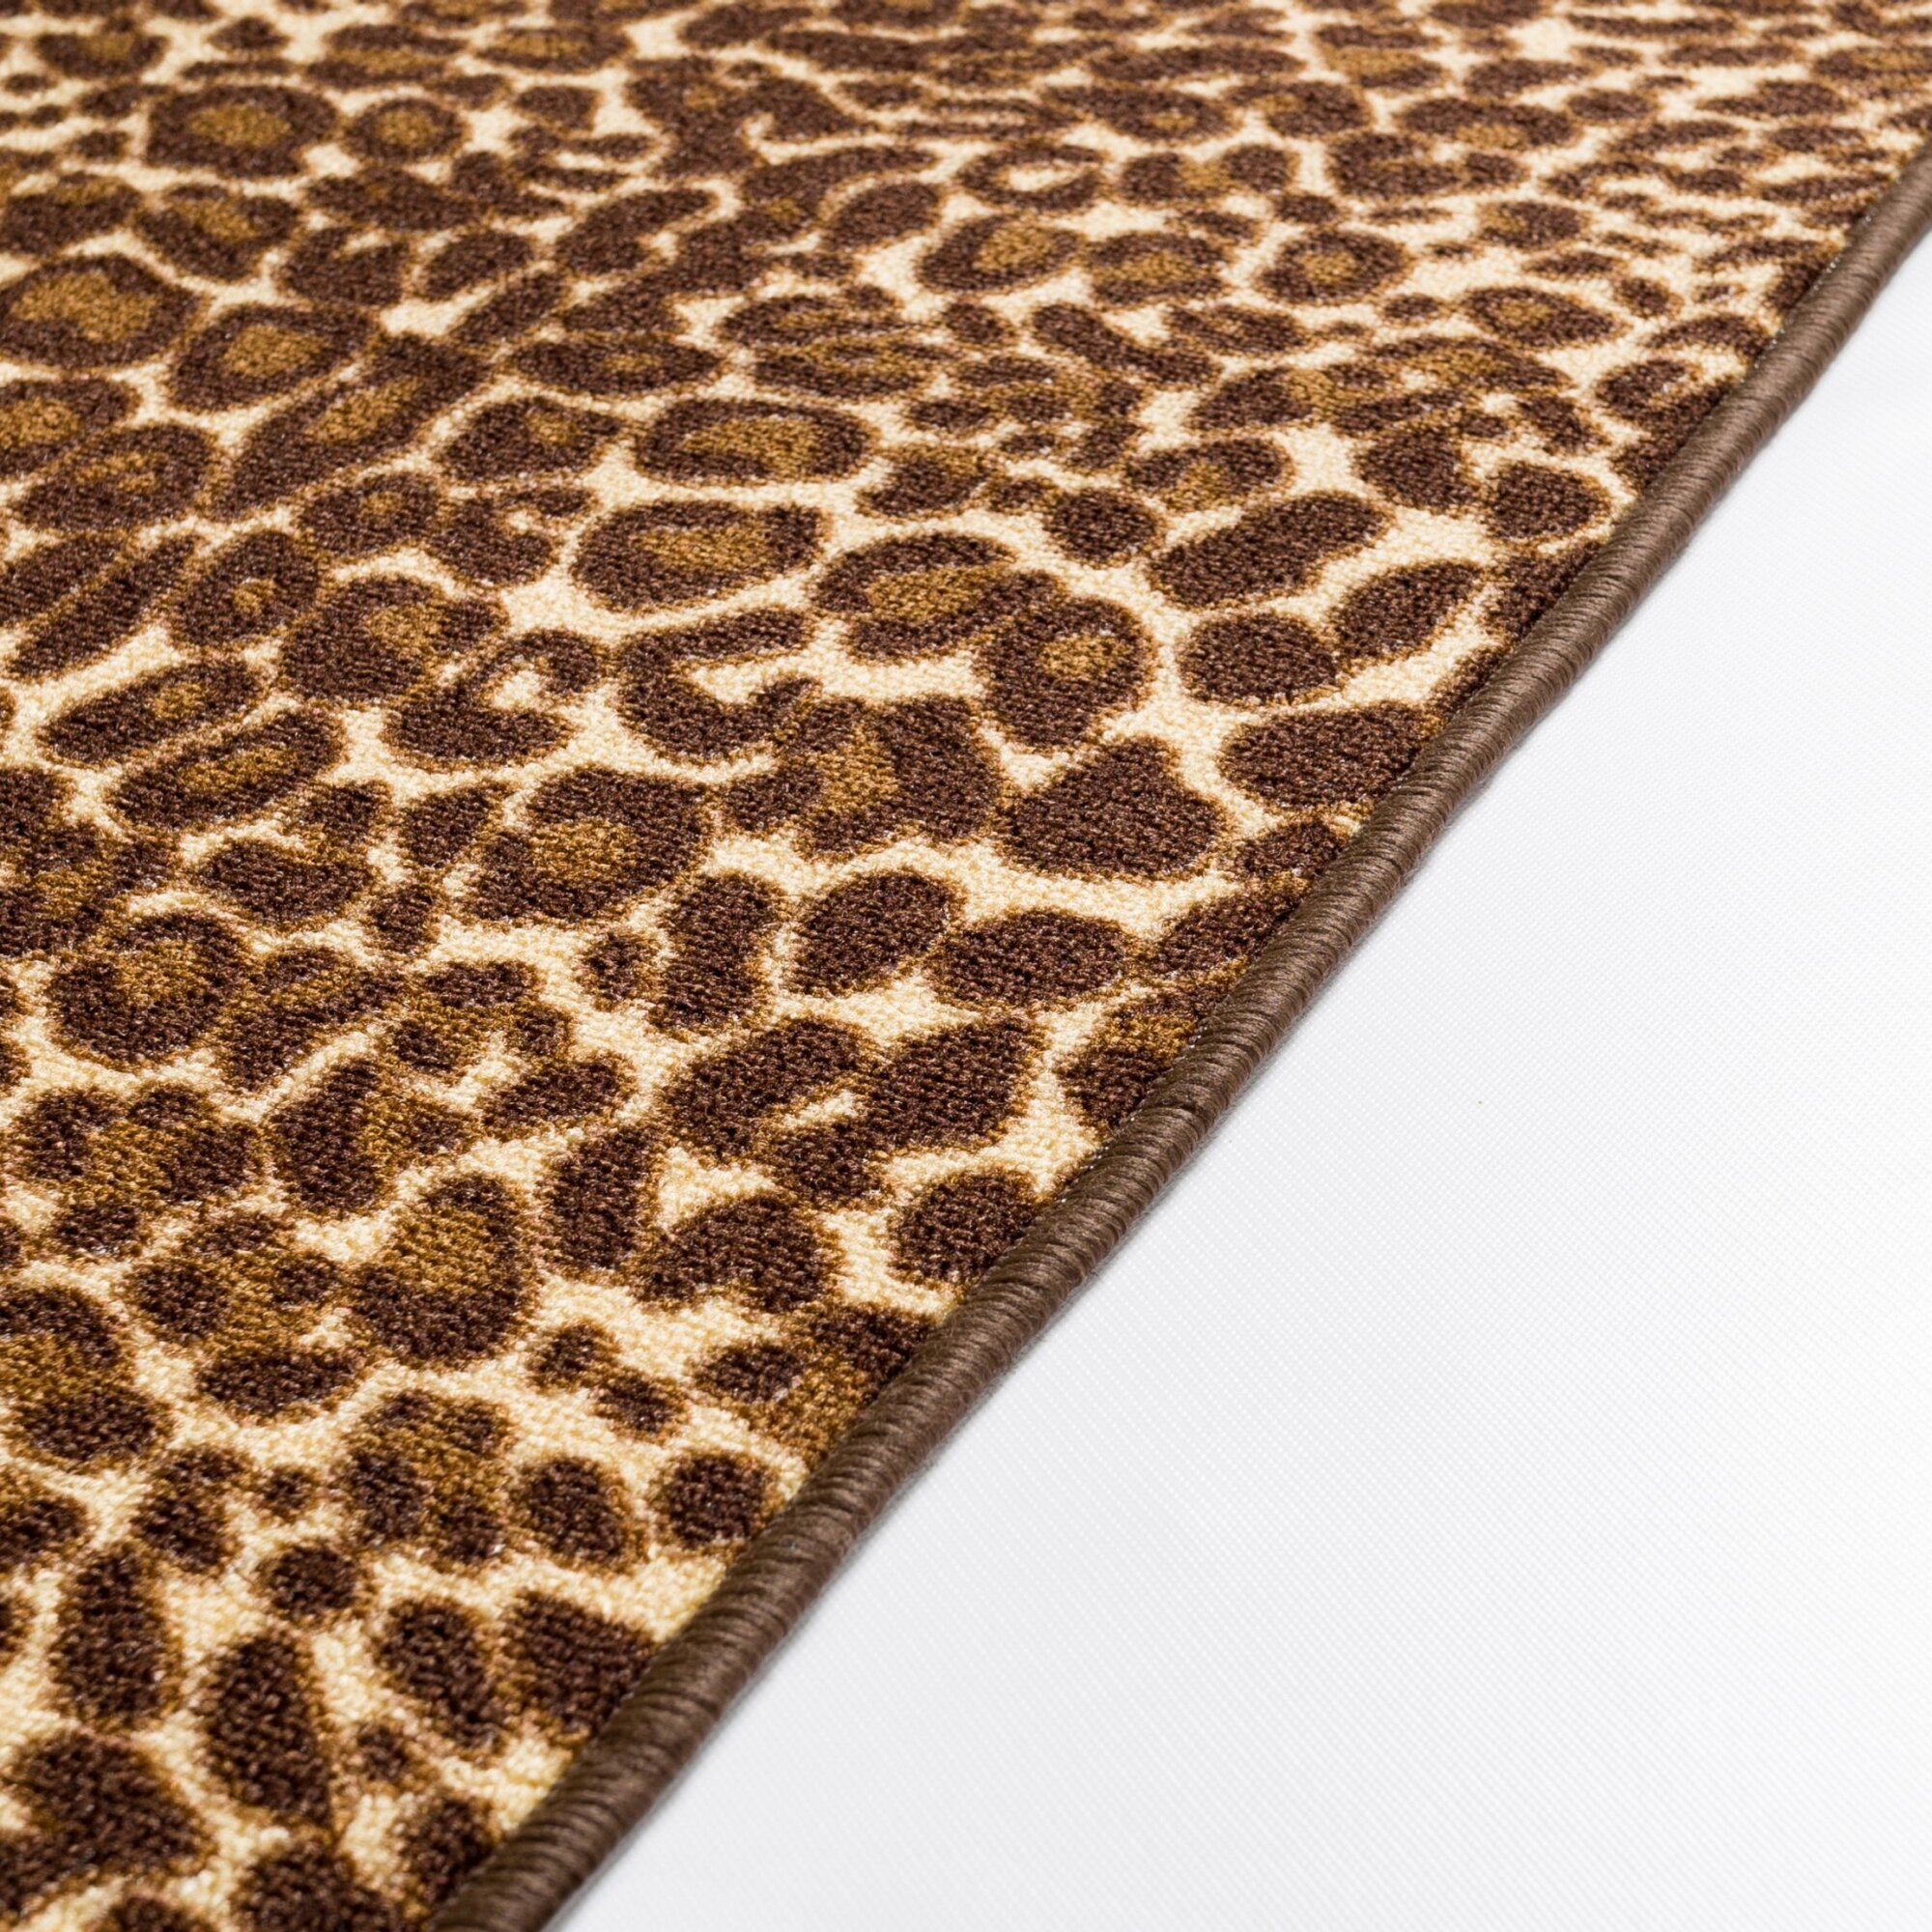 Leopard Print Rug In Dining Room: Well Woven Kings Court Gold Leopard Print Area Rug